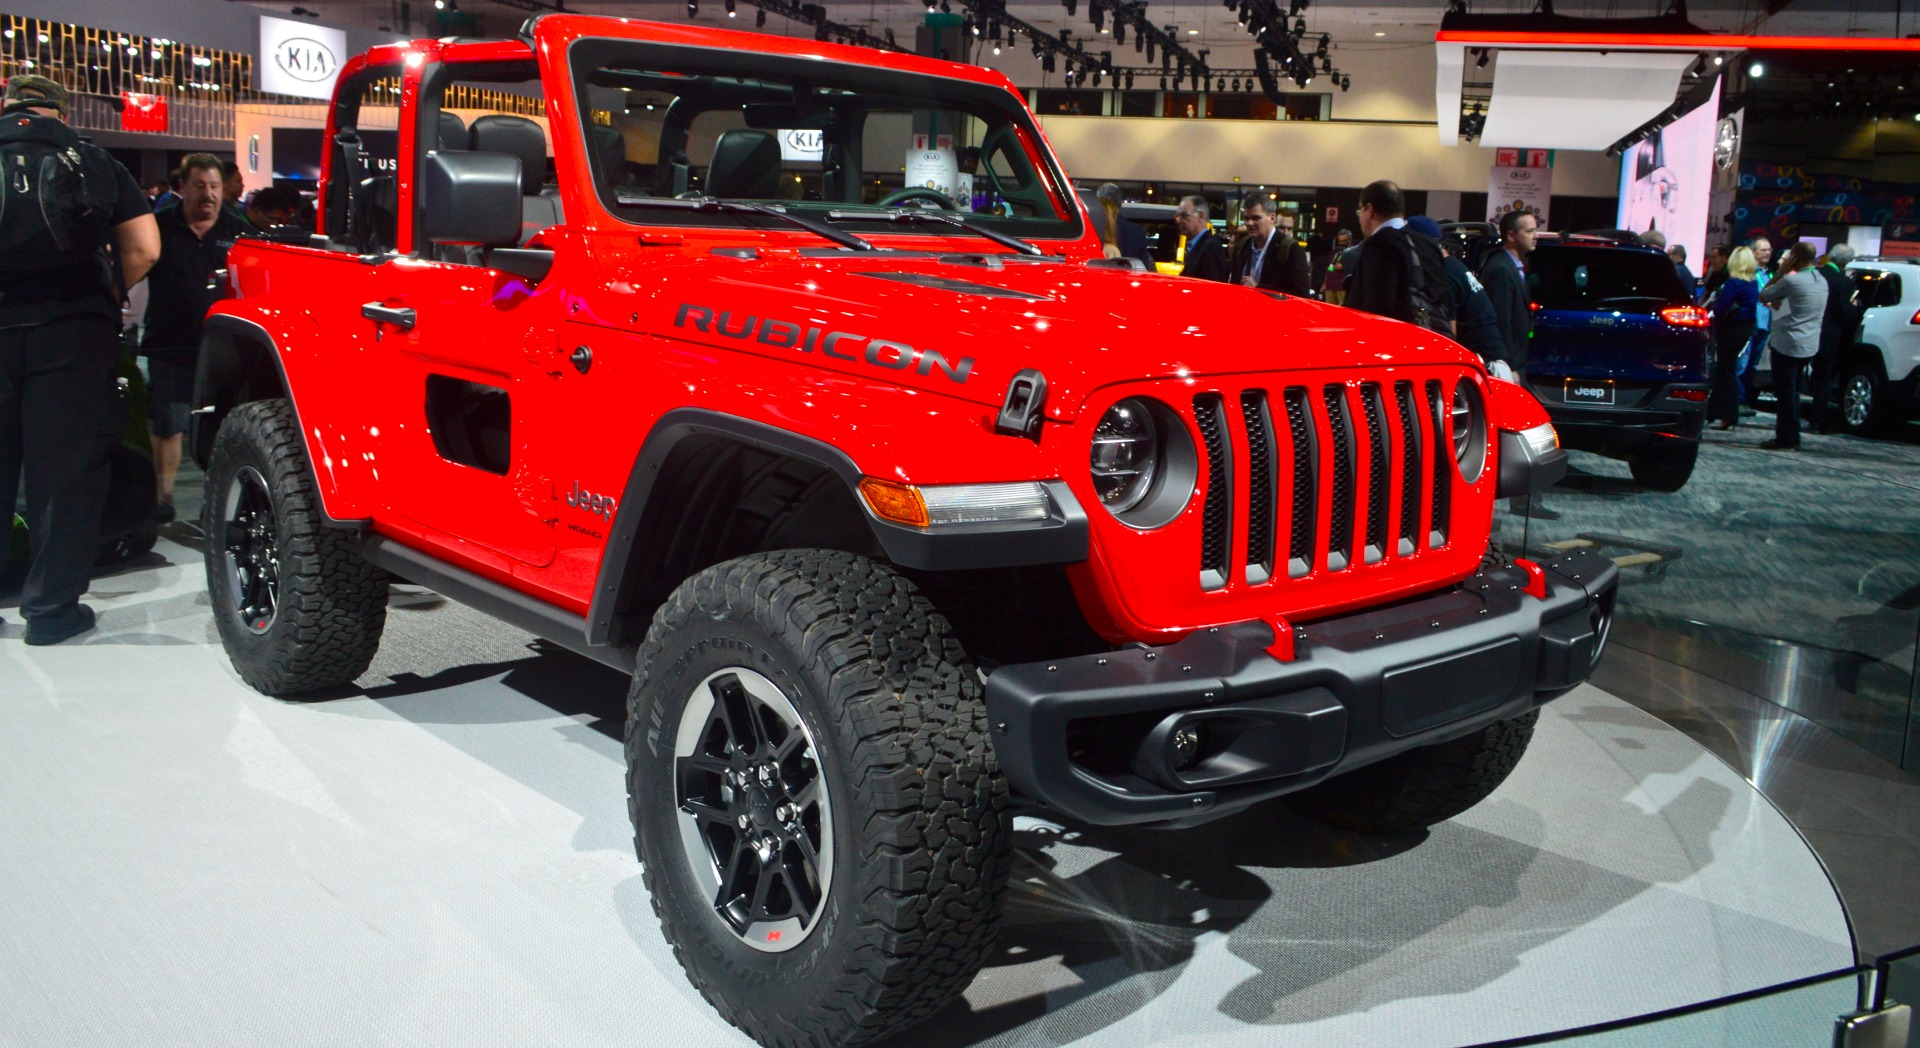 All-new 2018 Jeep Wrangler specs released at LA Auto Show on 1993 jeep grand cherokee engine diagram, 2004 jeep grand cherokee engine diagram, 2010 jeep wrangler engine belt, 2010 jeep wrangler fuse, 2003 jeep grand cherokee engine diagram, 2011 dodge grand caravan engine diagram, 2009 jeep grand cherokee engine diagram, 1997 jeep grand cherokee engine diagram, 2012 jeep liberty engine diagram, 2010 jeep wrangler noise, 2006 jeep grand cherokee engine diagram, 2010 jeep wrangler crank sensor, 2008 jeep grand cherokee engine diagram, 2012 jeep compass engine diagram, 2003 chevrolet trailblazer engine diagram, 2012 dodge journey engine diagram, 2010 jeep wrangler check engine light, 1995 jeep grand cherokee engine diagram, 2007 jeep grand cherokee engine diagram, 2009 dodge grand caravan engine diagram,